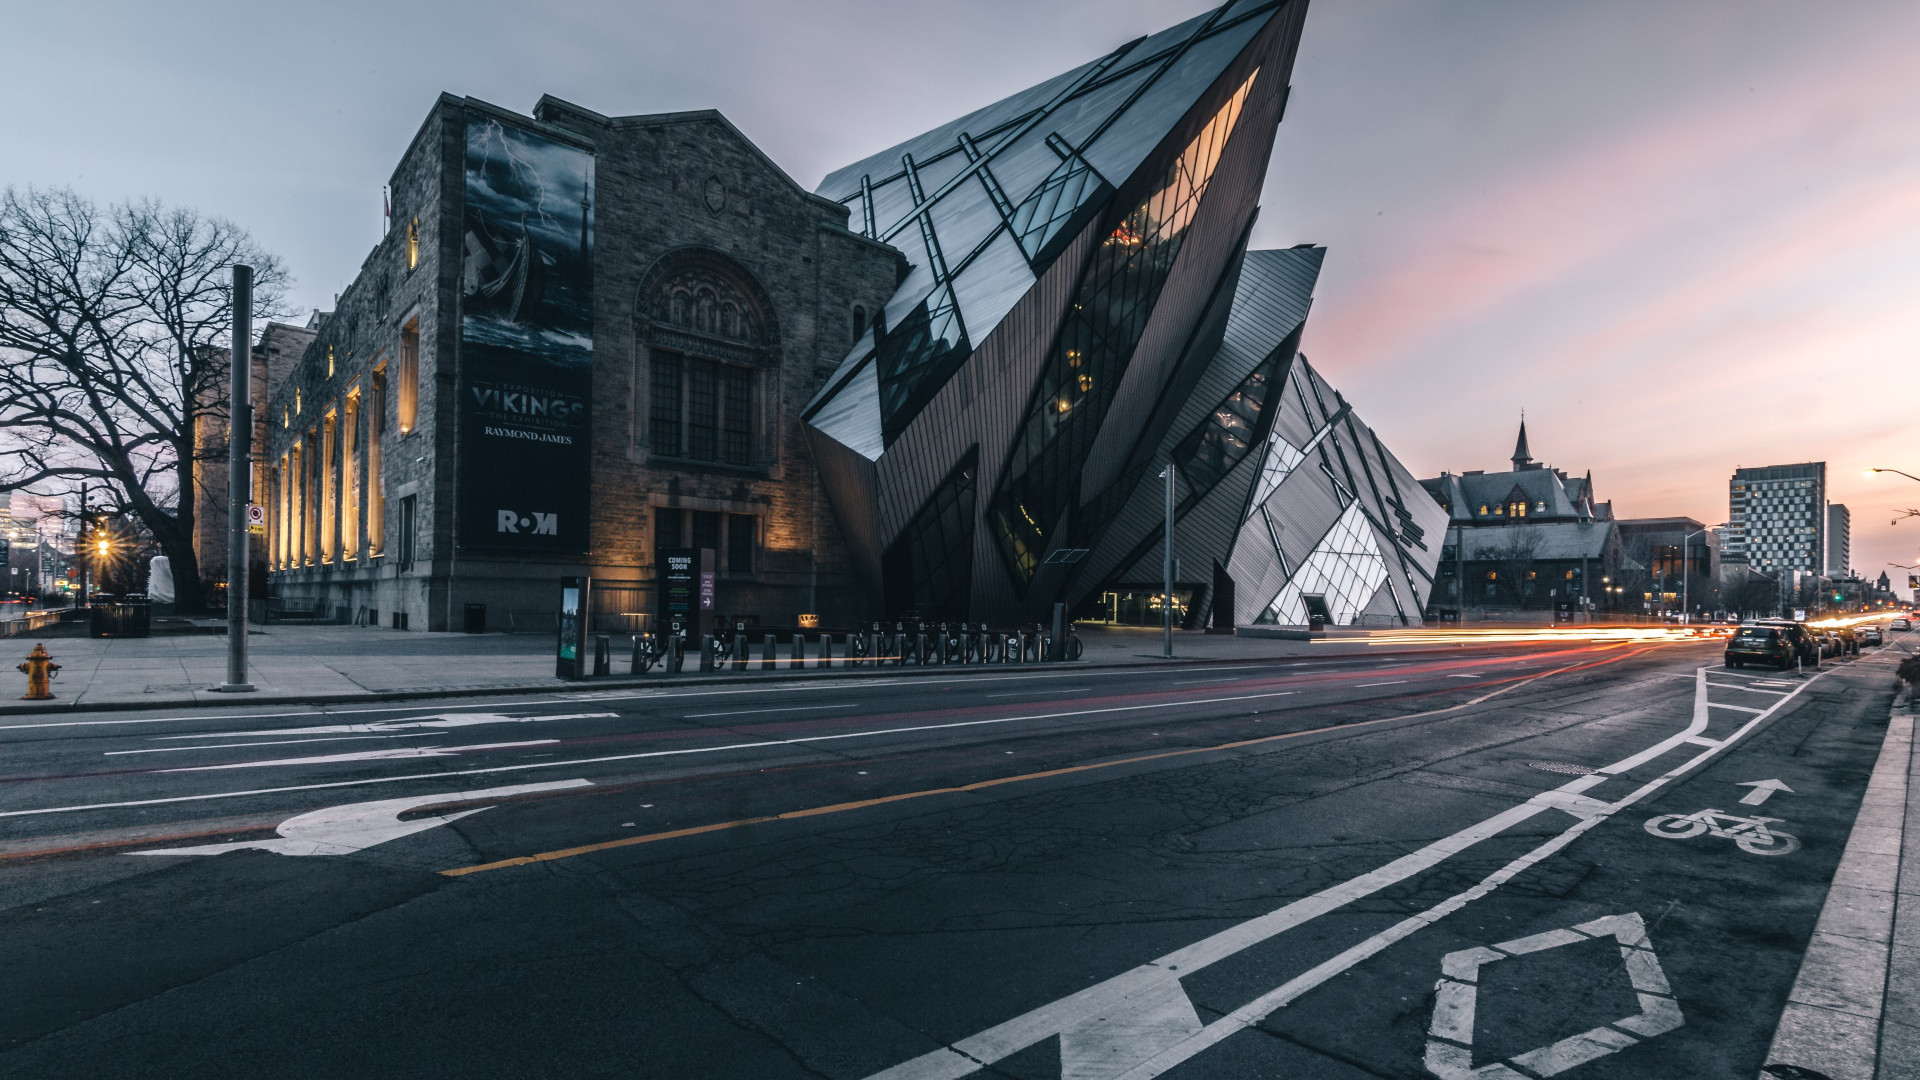 Royal Ontario Museum at sunset wallpaper 1920x1080